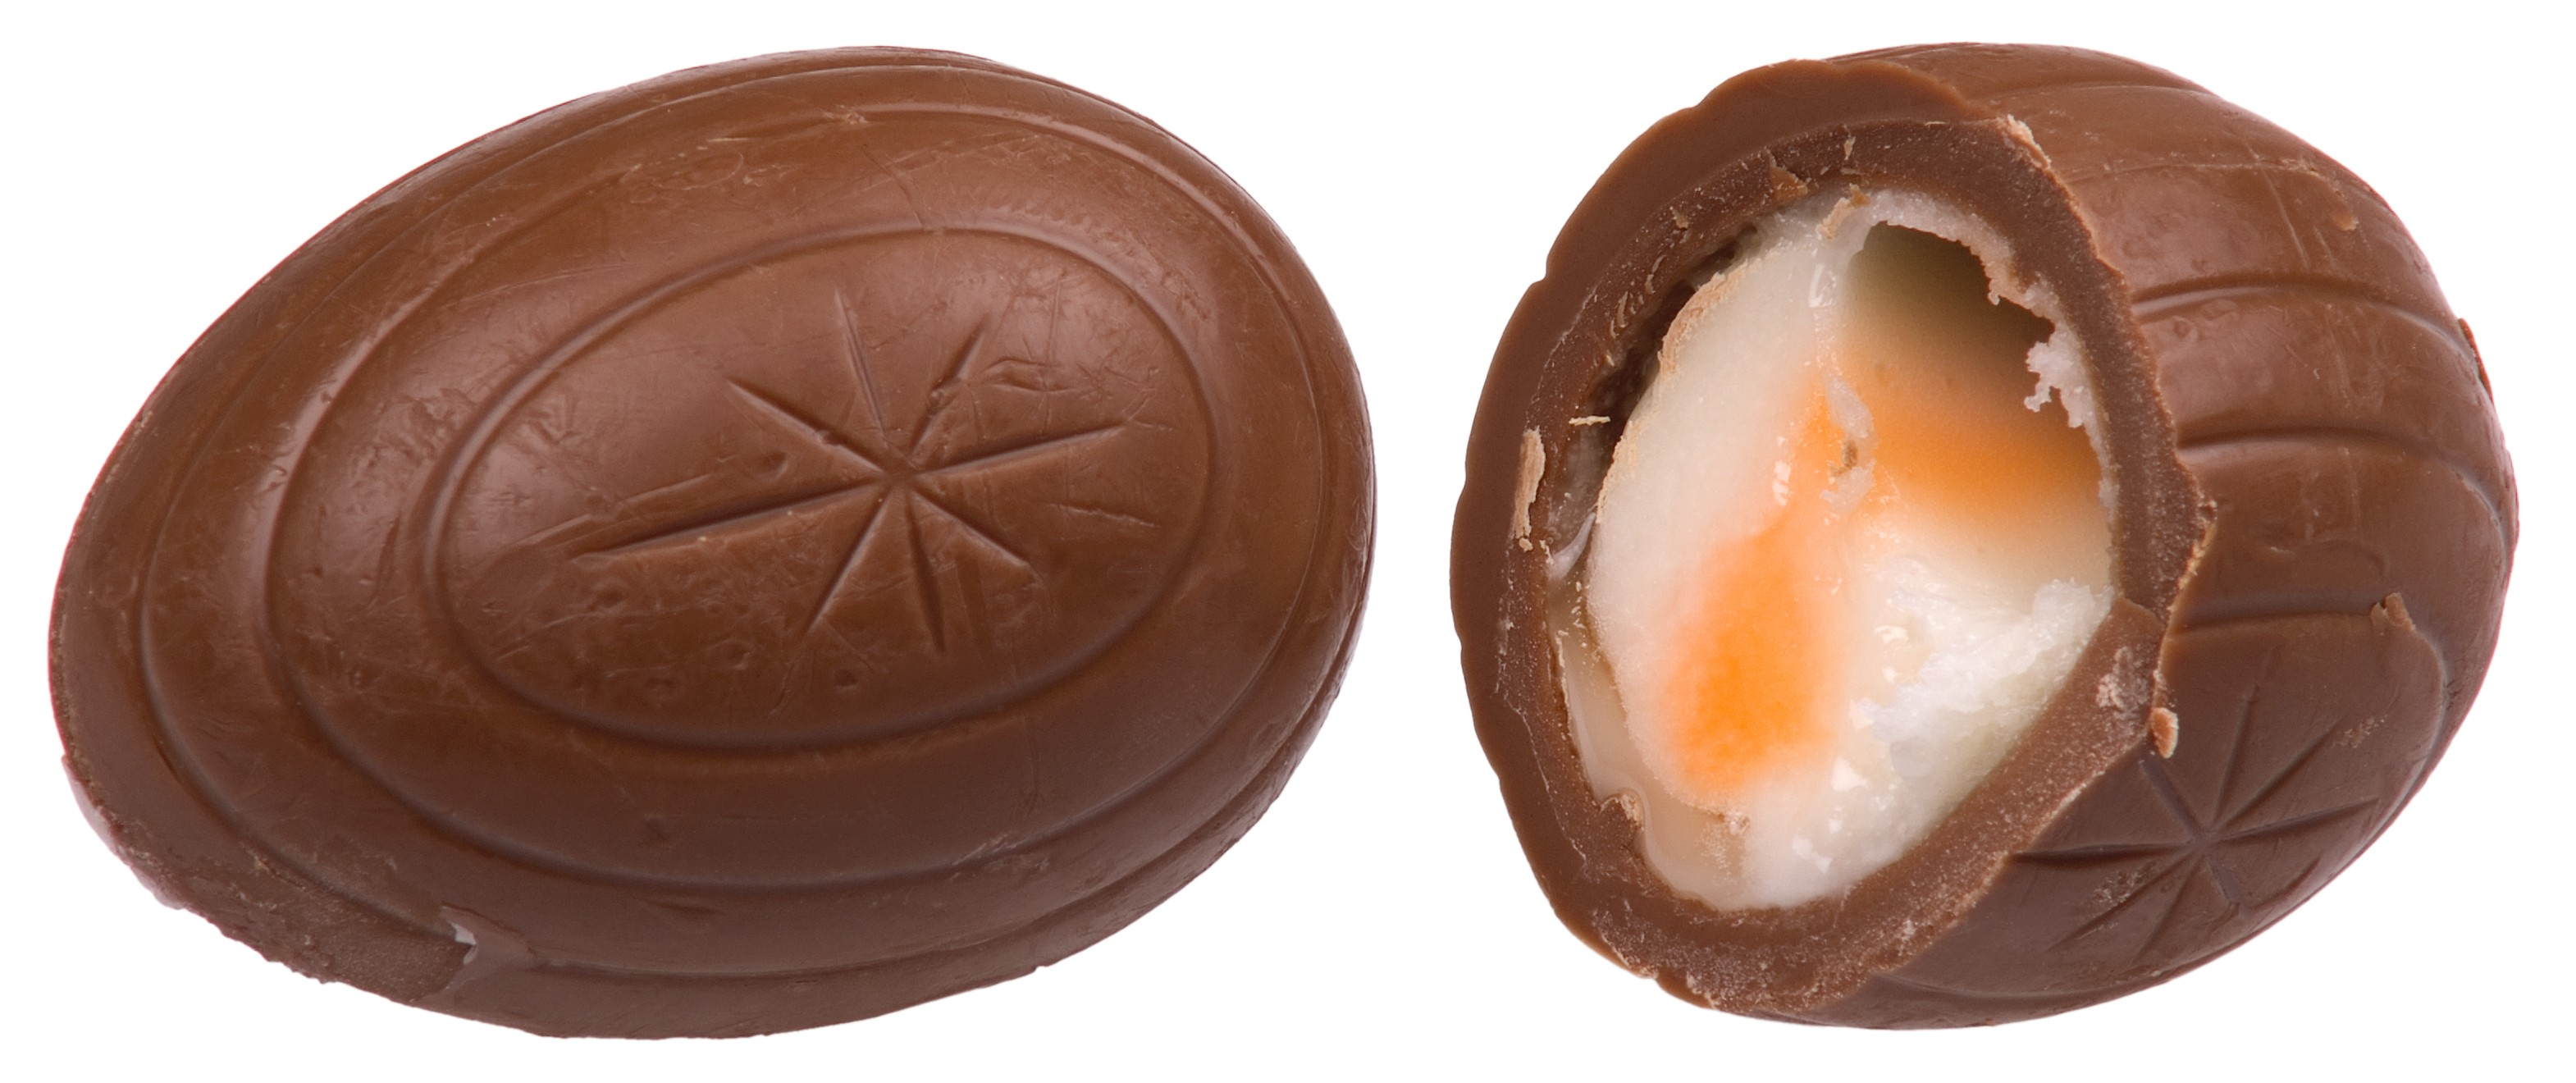 The great global Cadbury Creme Egg controversy